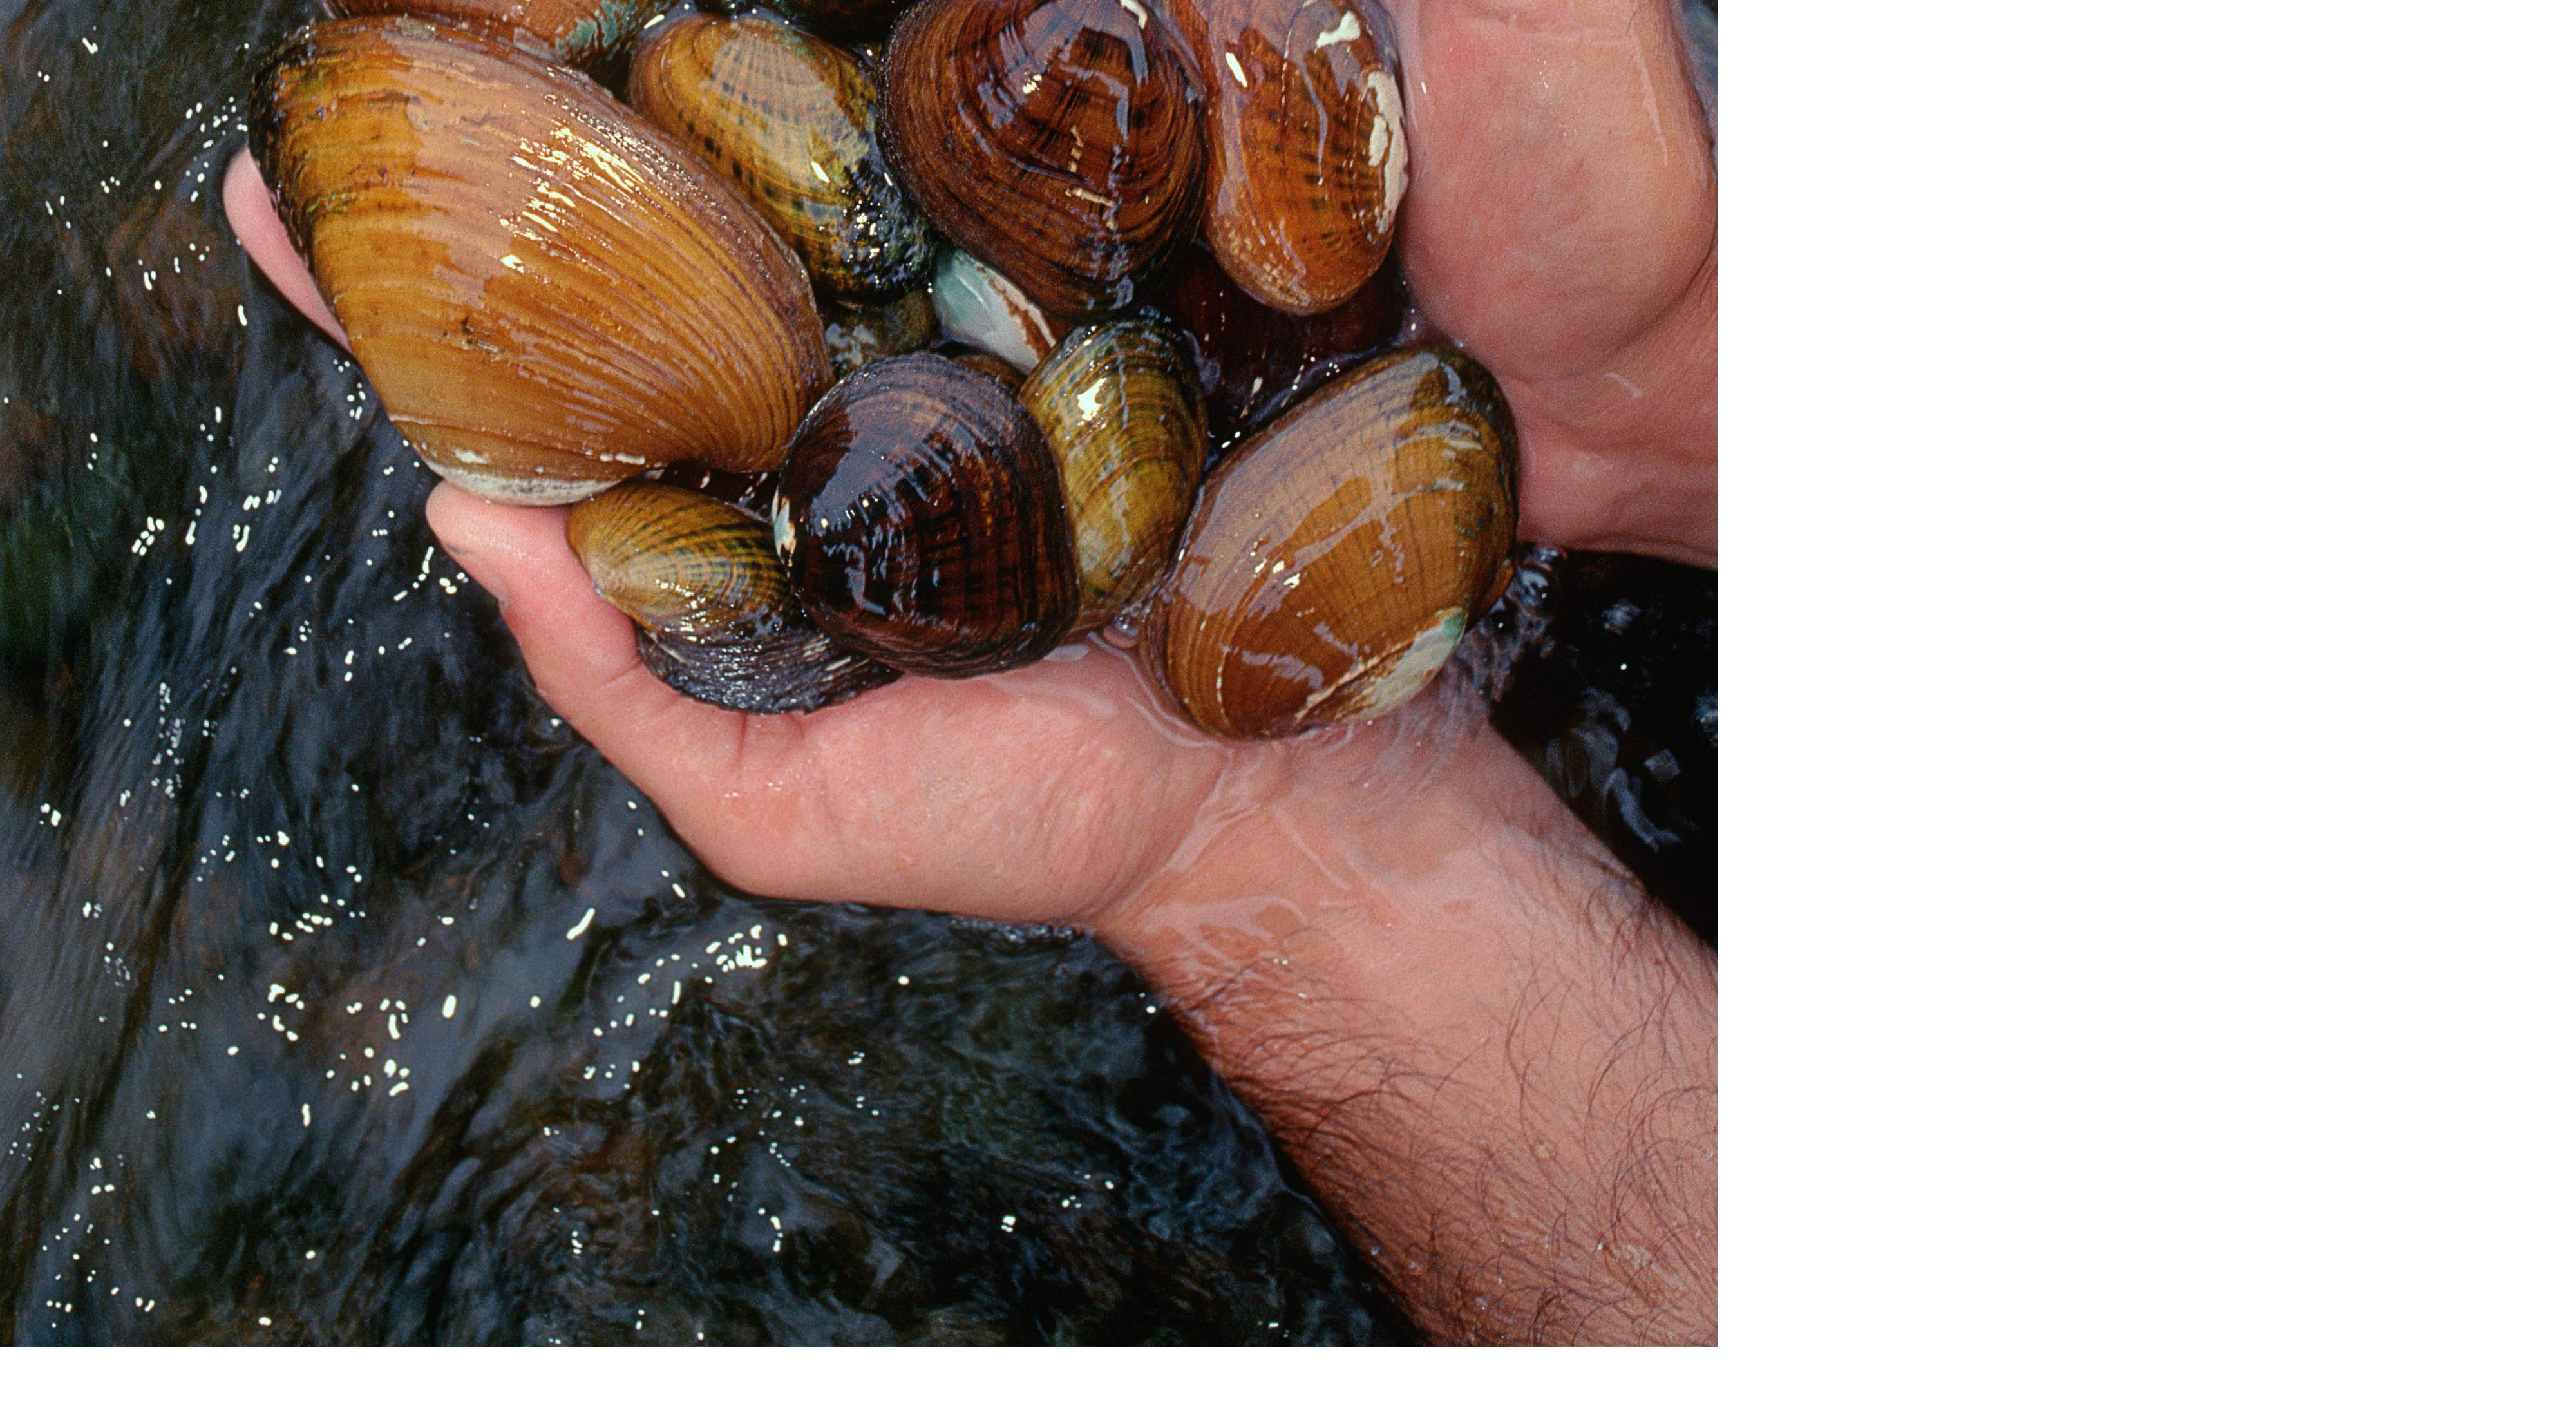 Hands holding freshwater mussels